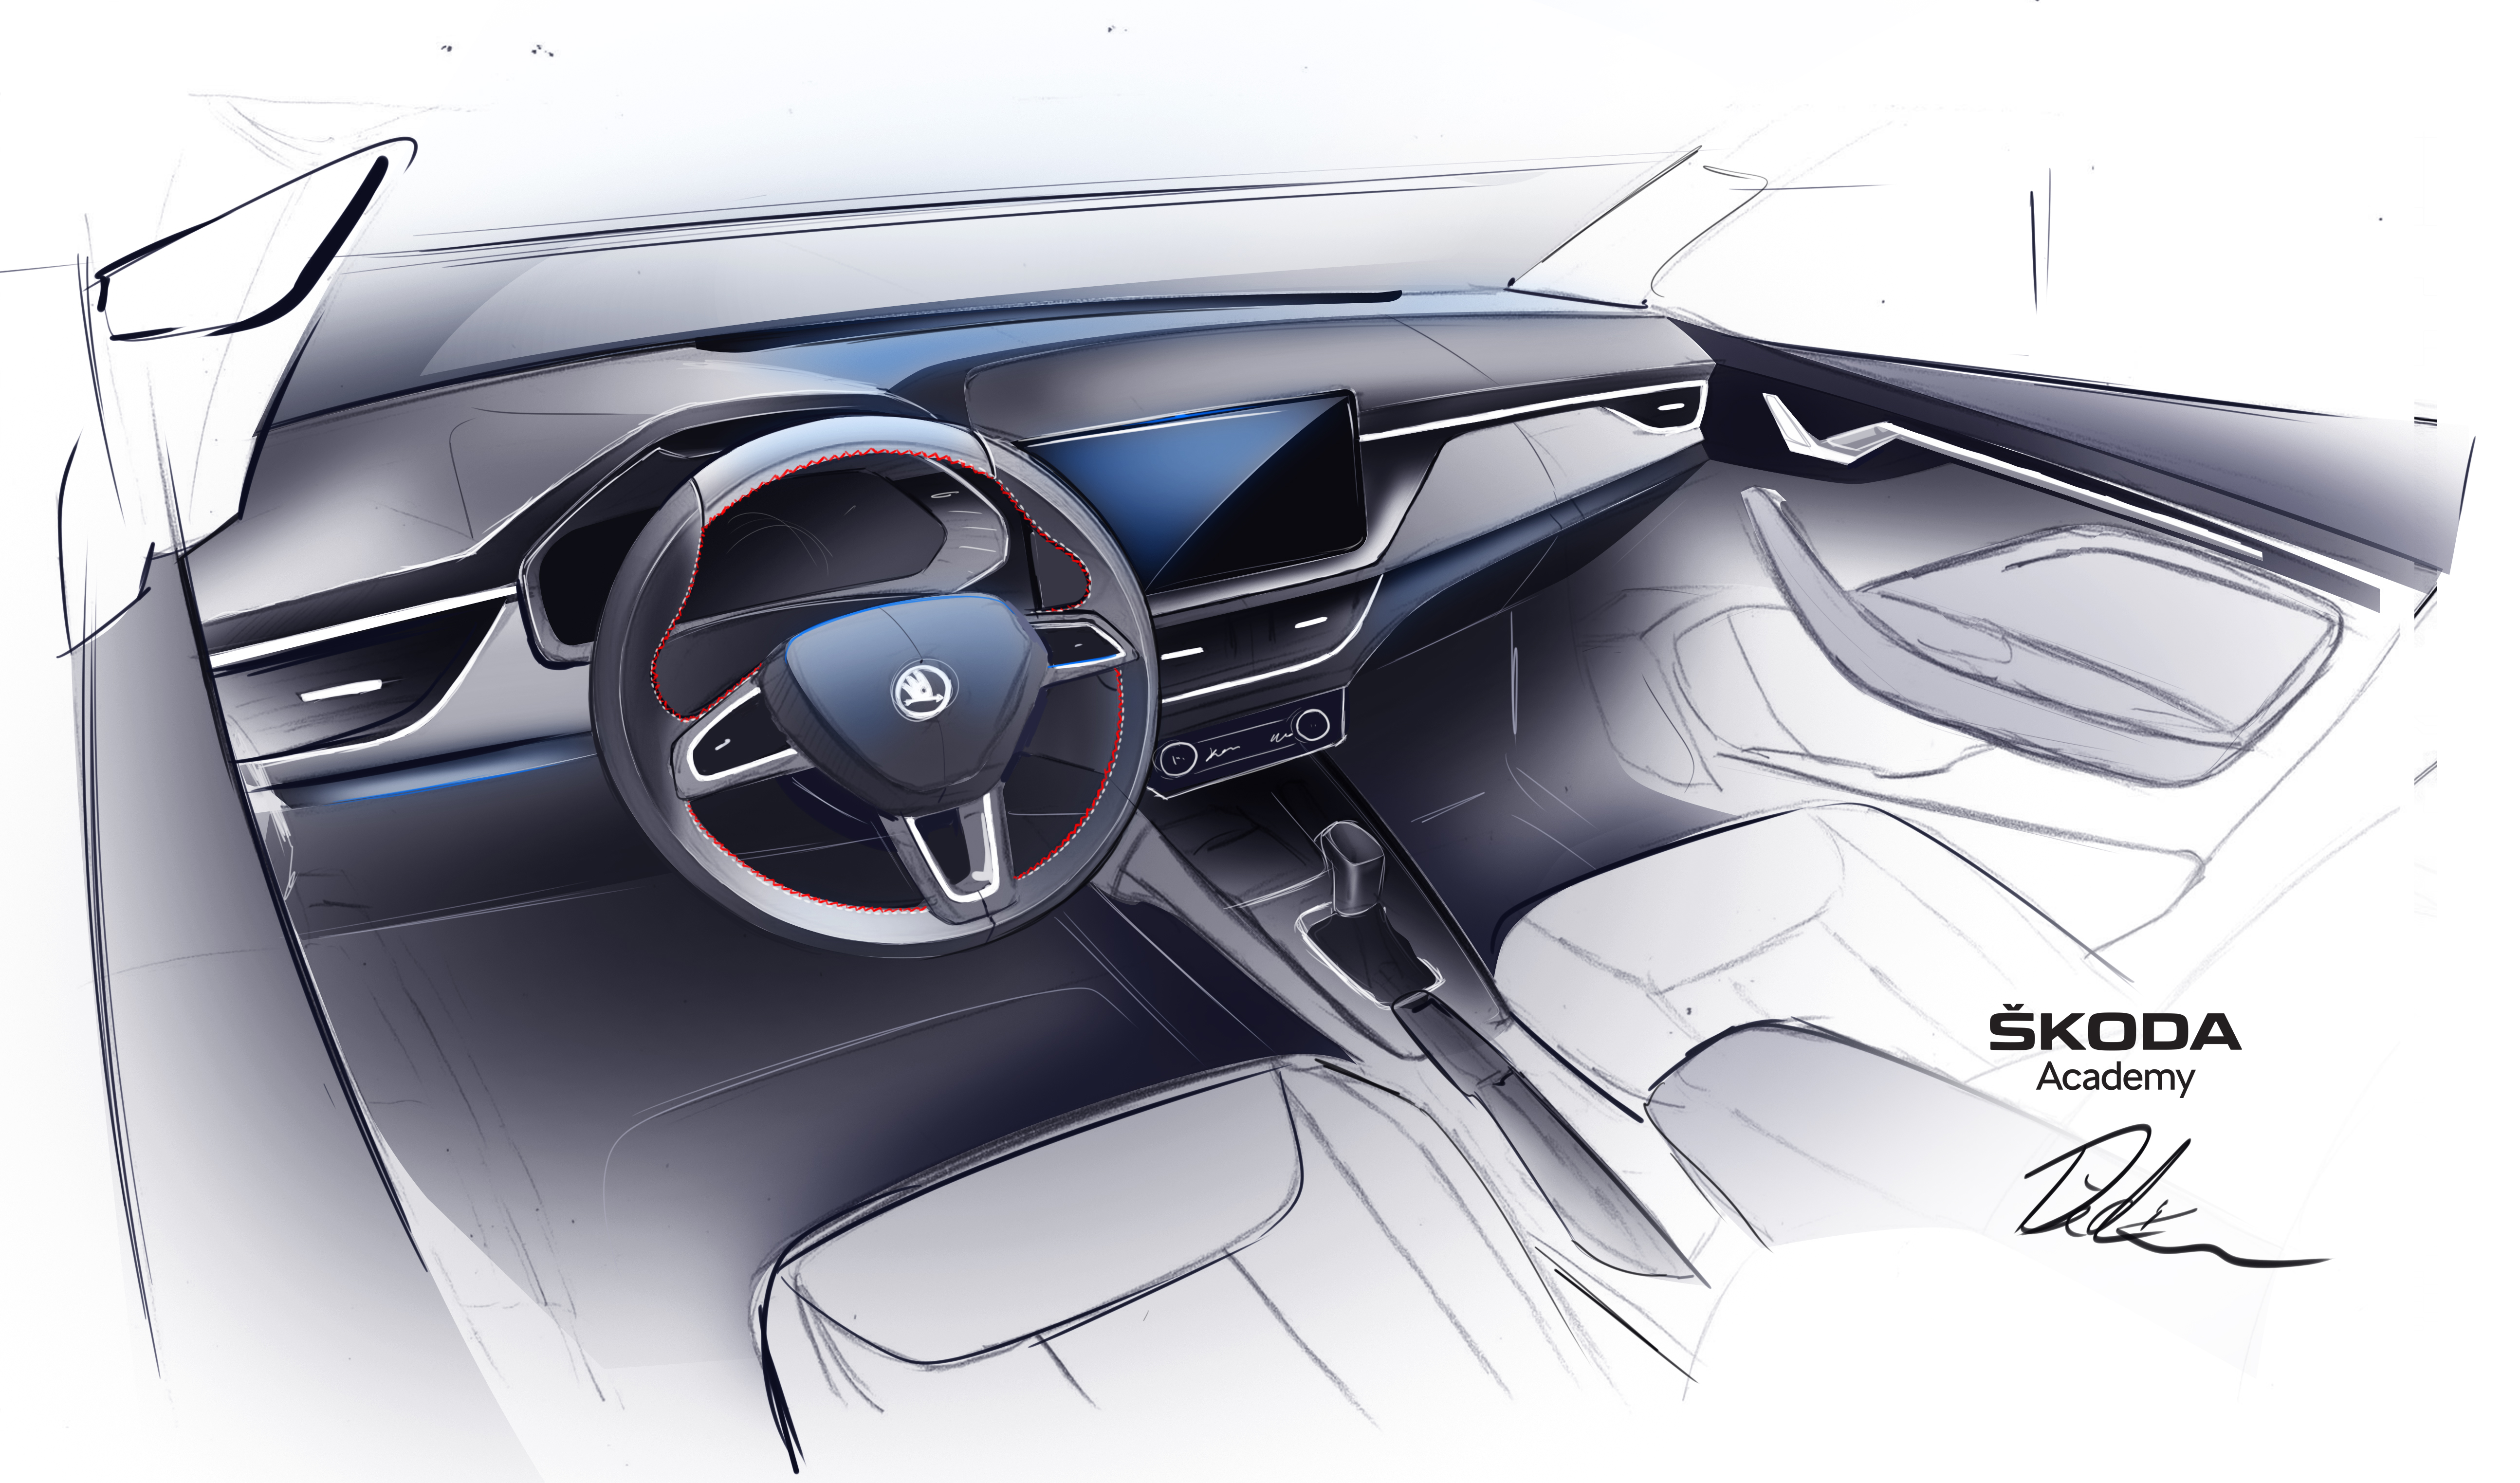 Seventh SKODA Student Concept Car is taking shape: Students are working on a Spider variant of the SKODA SCALA - Image 5